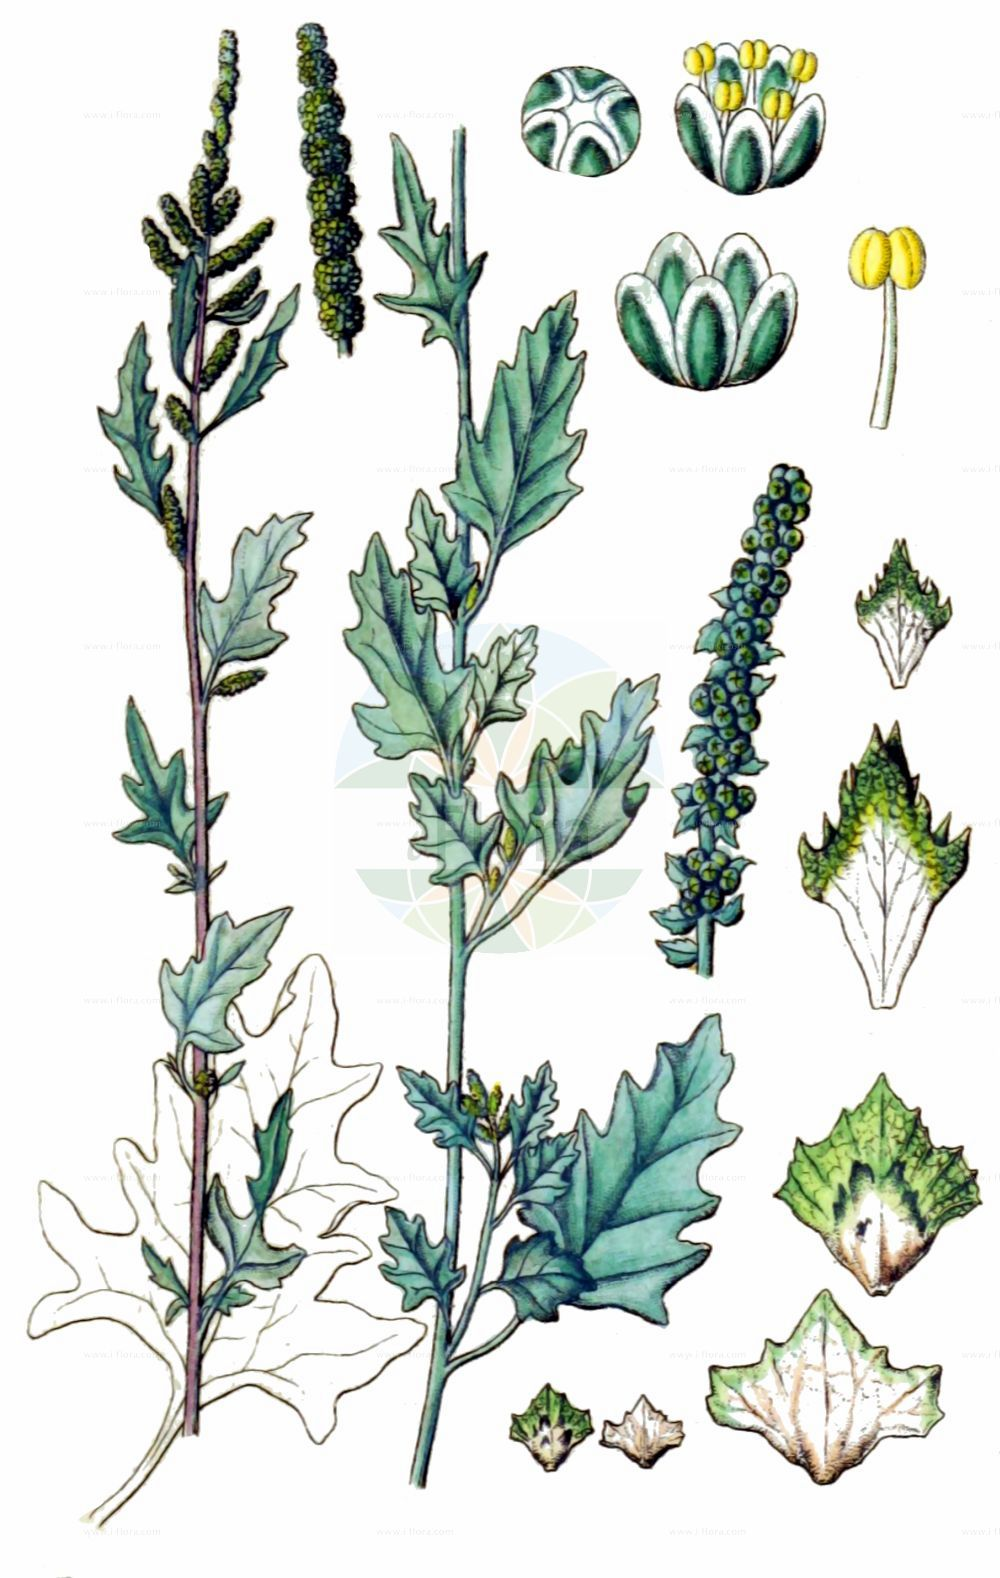 Historische Abbildung von Atriplex laciniata (Gelappte Melde - Frosted Orache). Das Bild zeigt Blatt, Bluete, Frucht und Same. ---- Historical Drawing of Atriplex laciniata (Gelappte Melde - Frosted Orache).The image is showing leaf, flower, fruit and seed.(Atriplex laciniata,Gelappte Melde,Frosted Orache,Atriplex arenaria,Atriplex laciniata,Atriplex maritima,Atriplex sabulosa,Gelappte Melde,Frosted Orache,Atriplex,Melde,Saltbush,Amaranthaceae,Fuchsschwanzgewaechse,Pigweed family,Blatt,Bluete,Frucht,Same,leaf,flower,fruit,seed,Sturm (1796f))